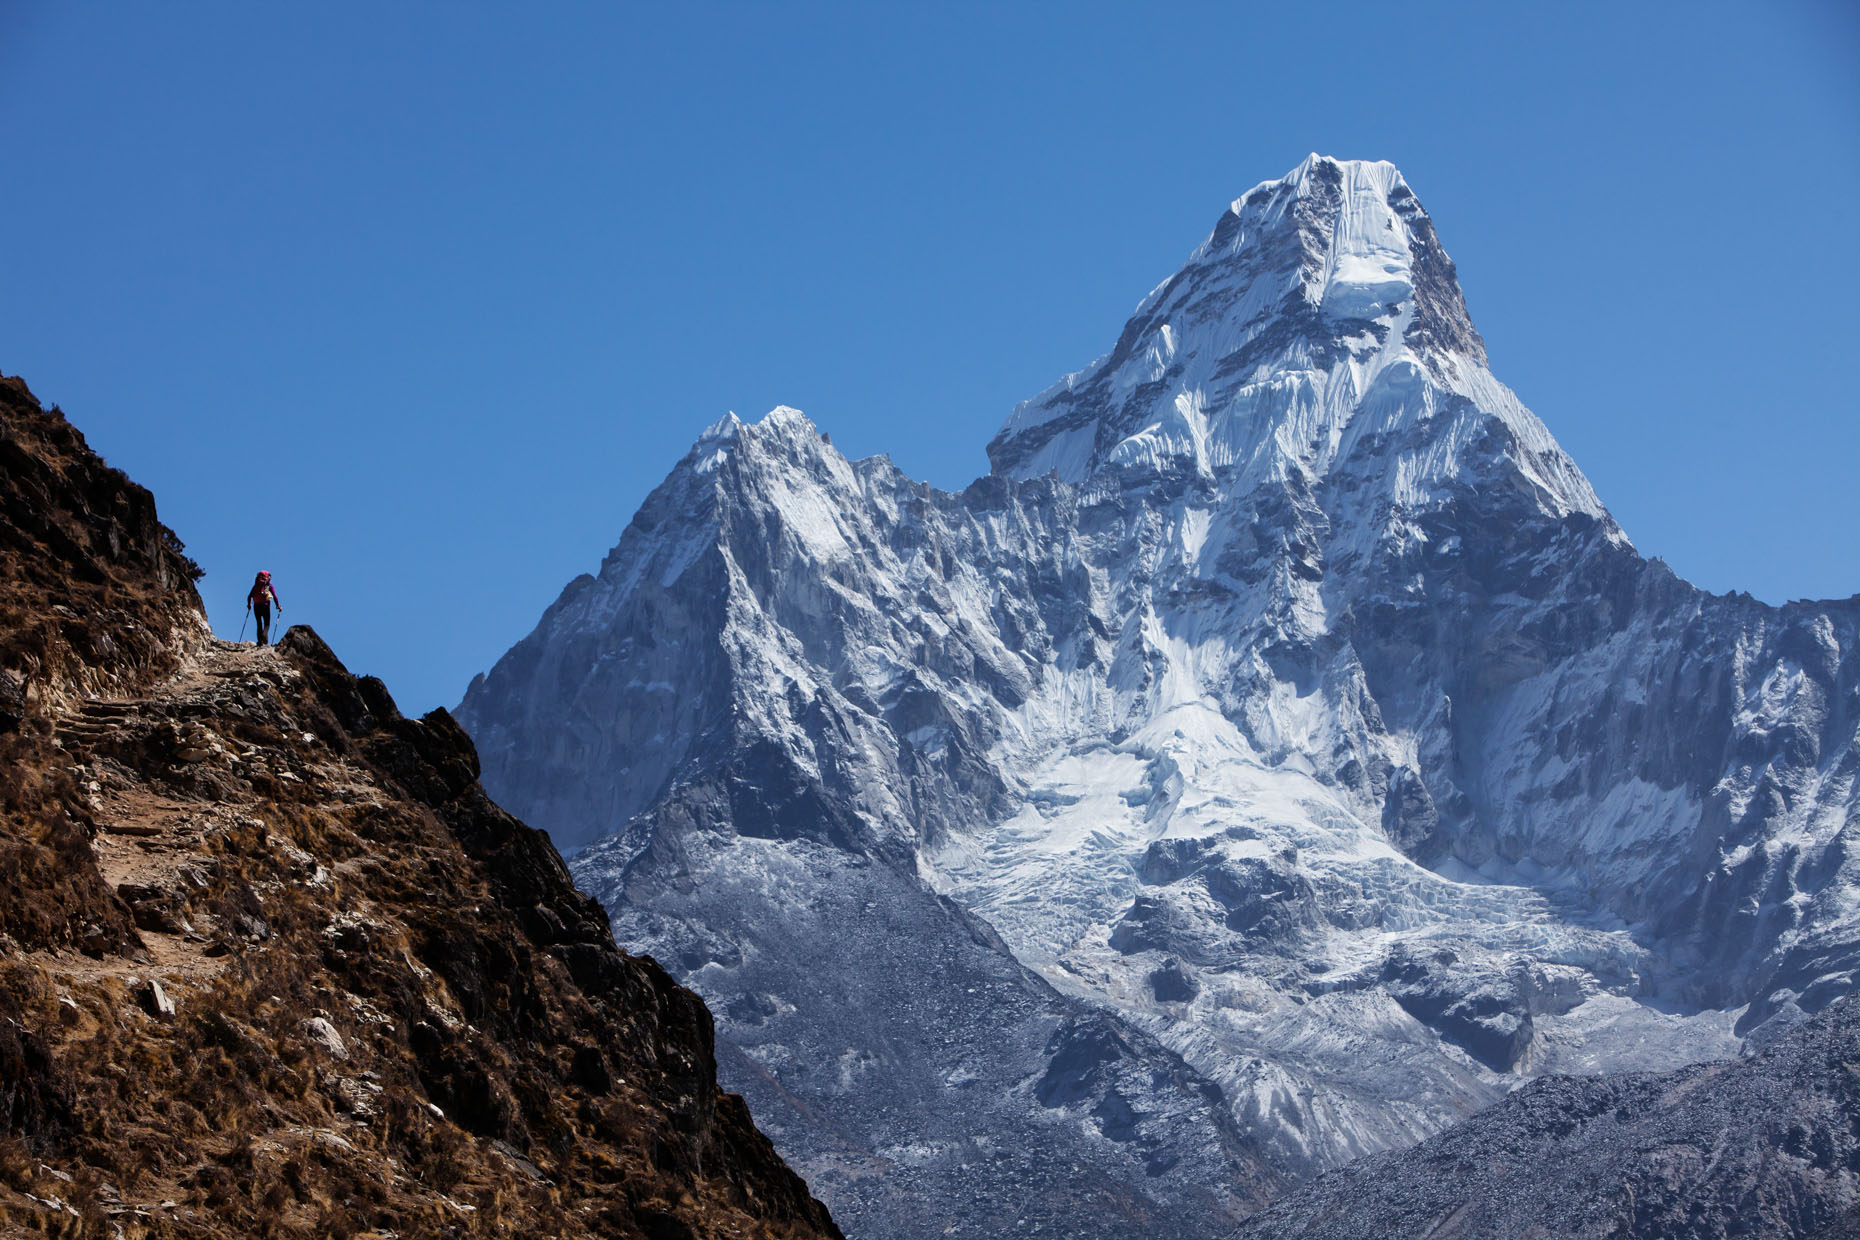 Everest_DX_07.jpg